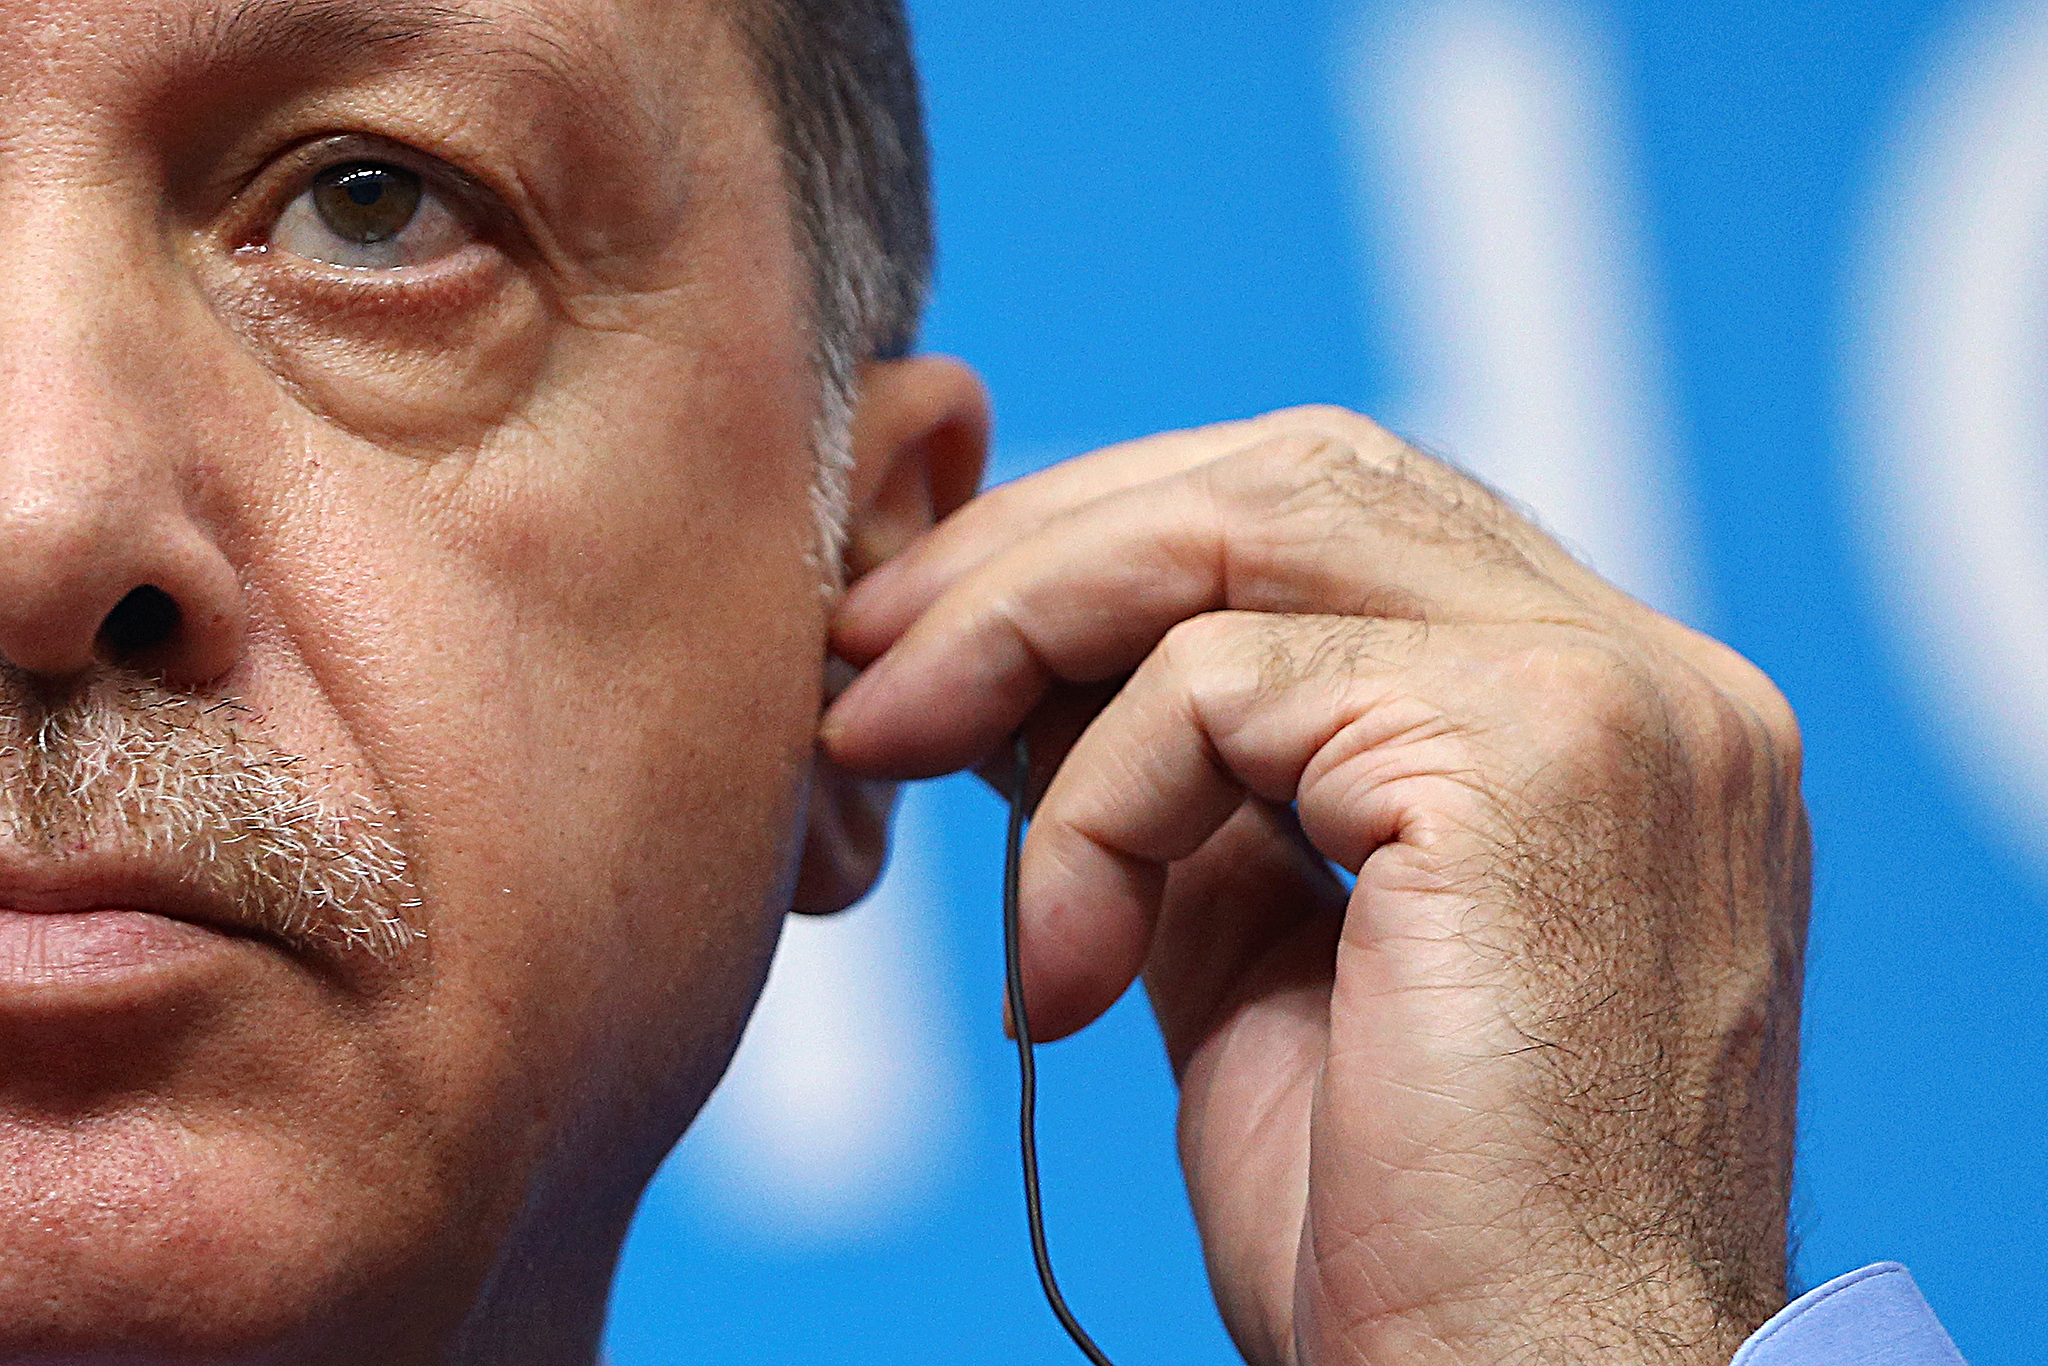 Turkey's President Tayyip Erdogan adjusts earphones during a news conference after the closing of G20 Summit in Hangzhou, Zhejiang Province, China, September 5, 2